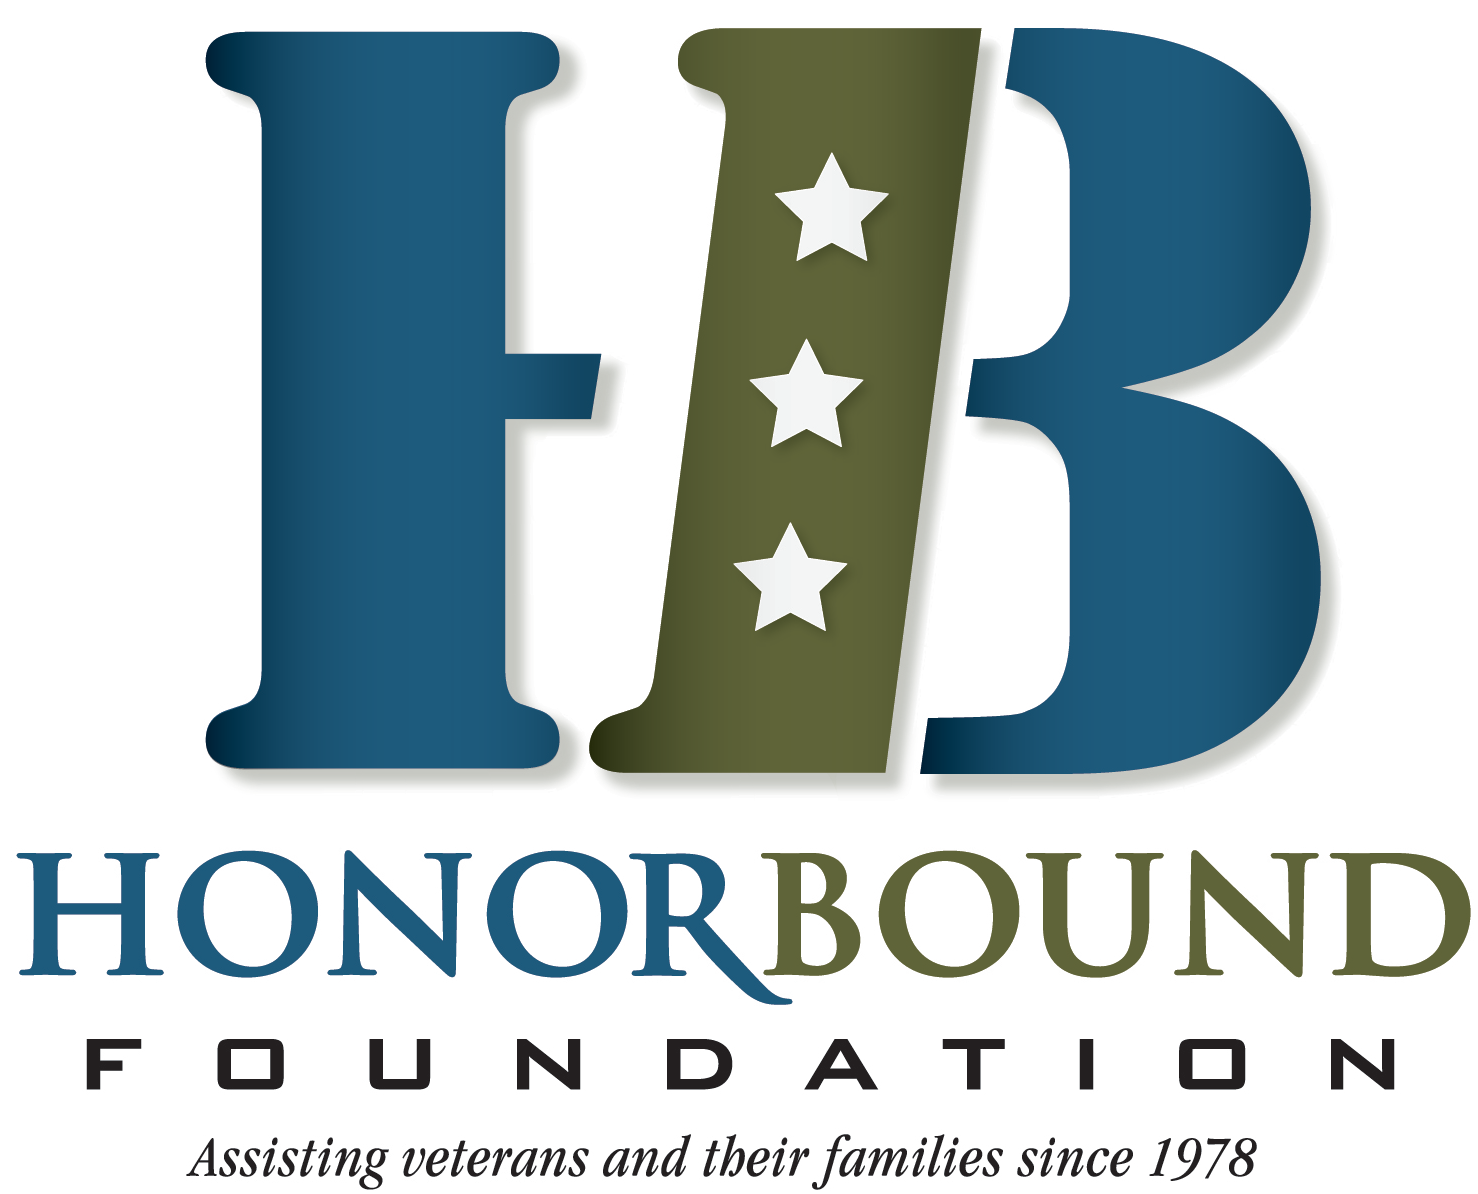 Arizona Car Donations - HonorBound Foundation - DonatecarUSA.com